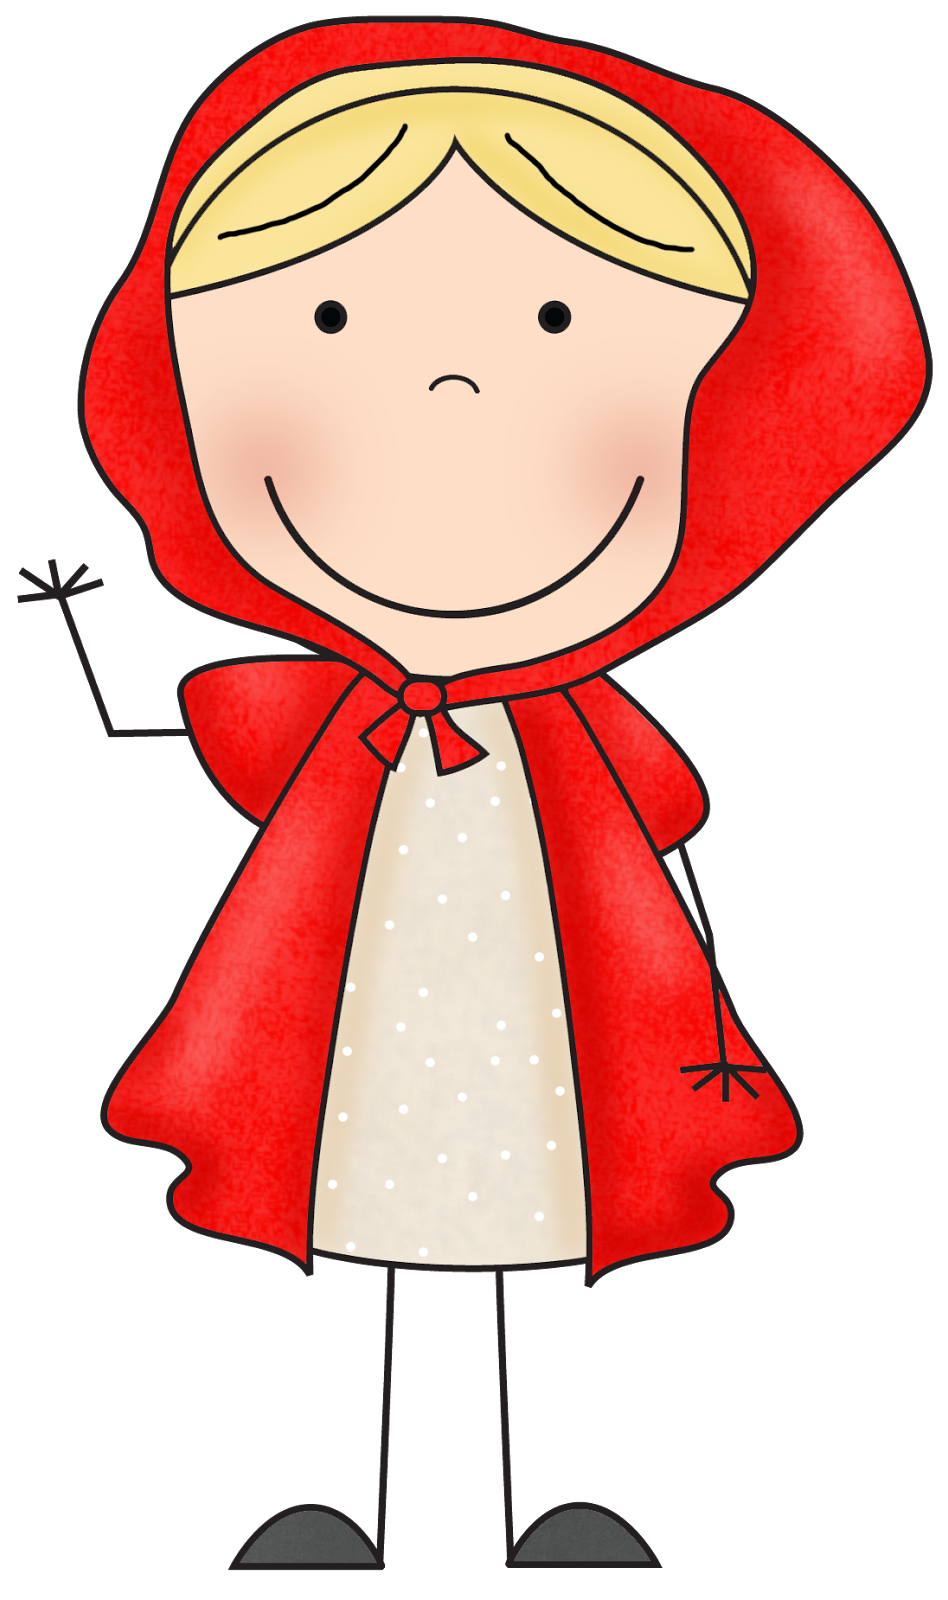 Wolf clipart red riding hood. Book club number the